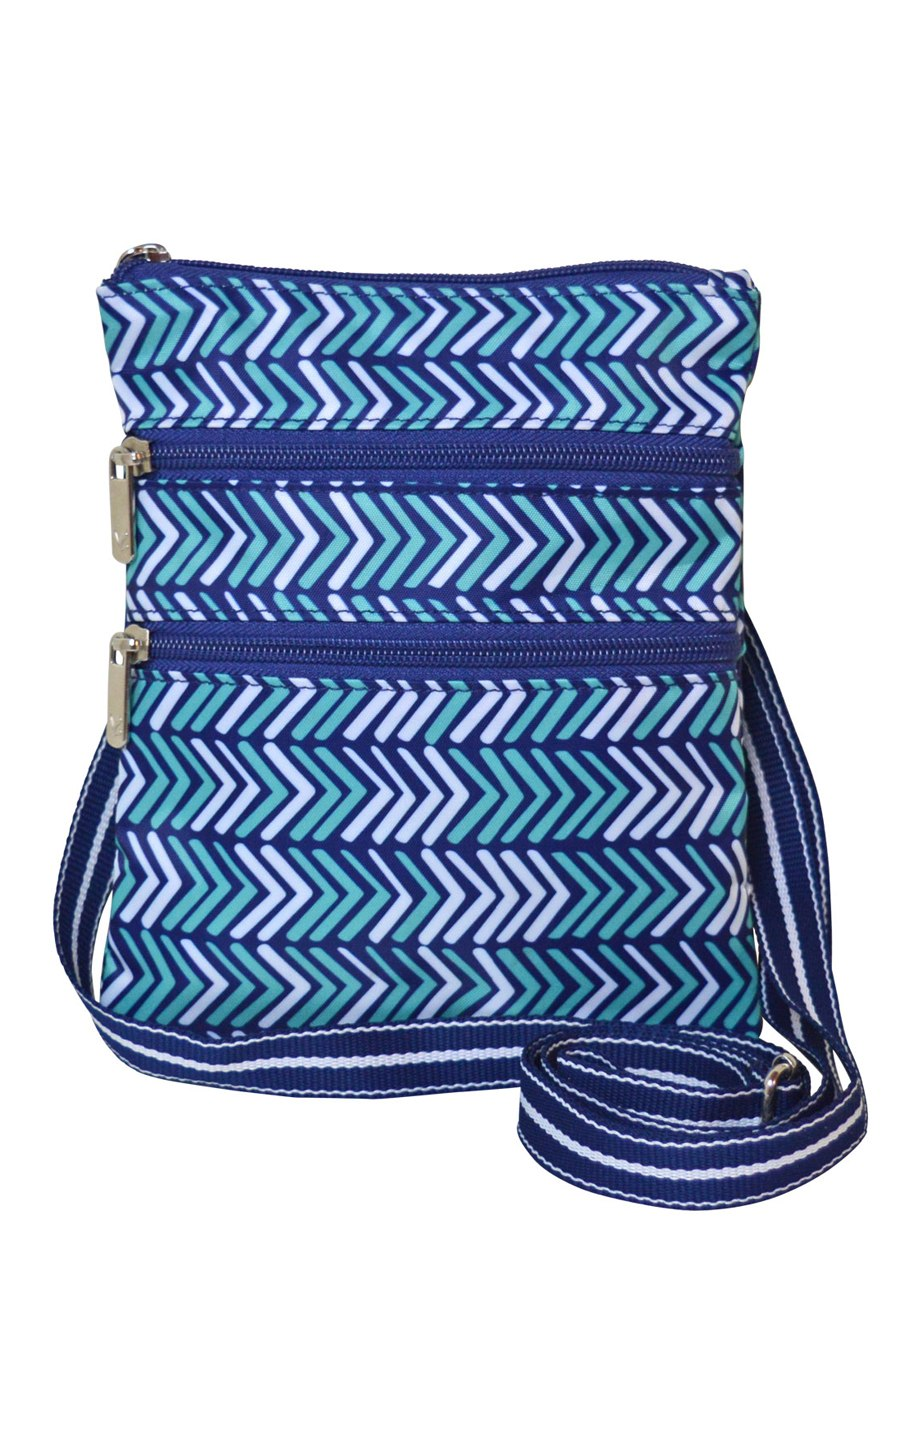 Vacay This Way Crossbody Bag